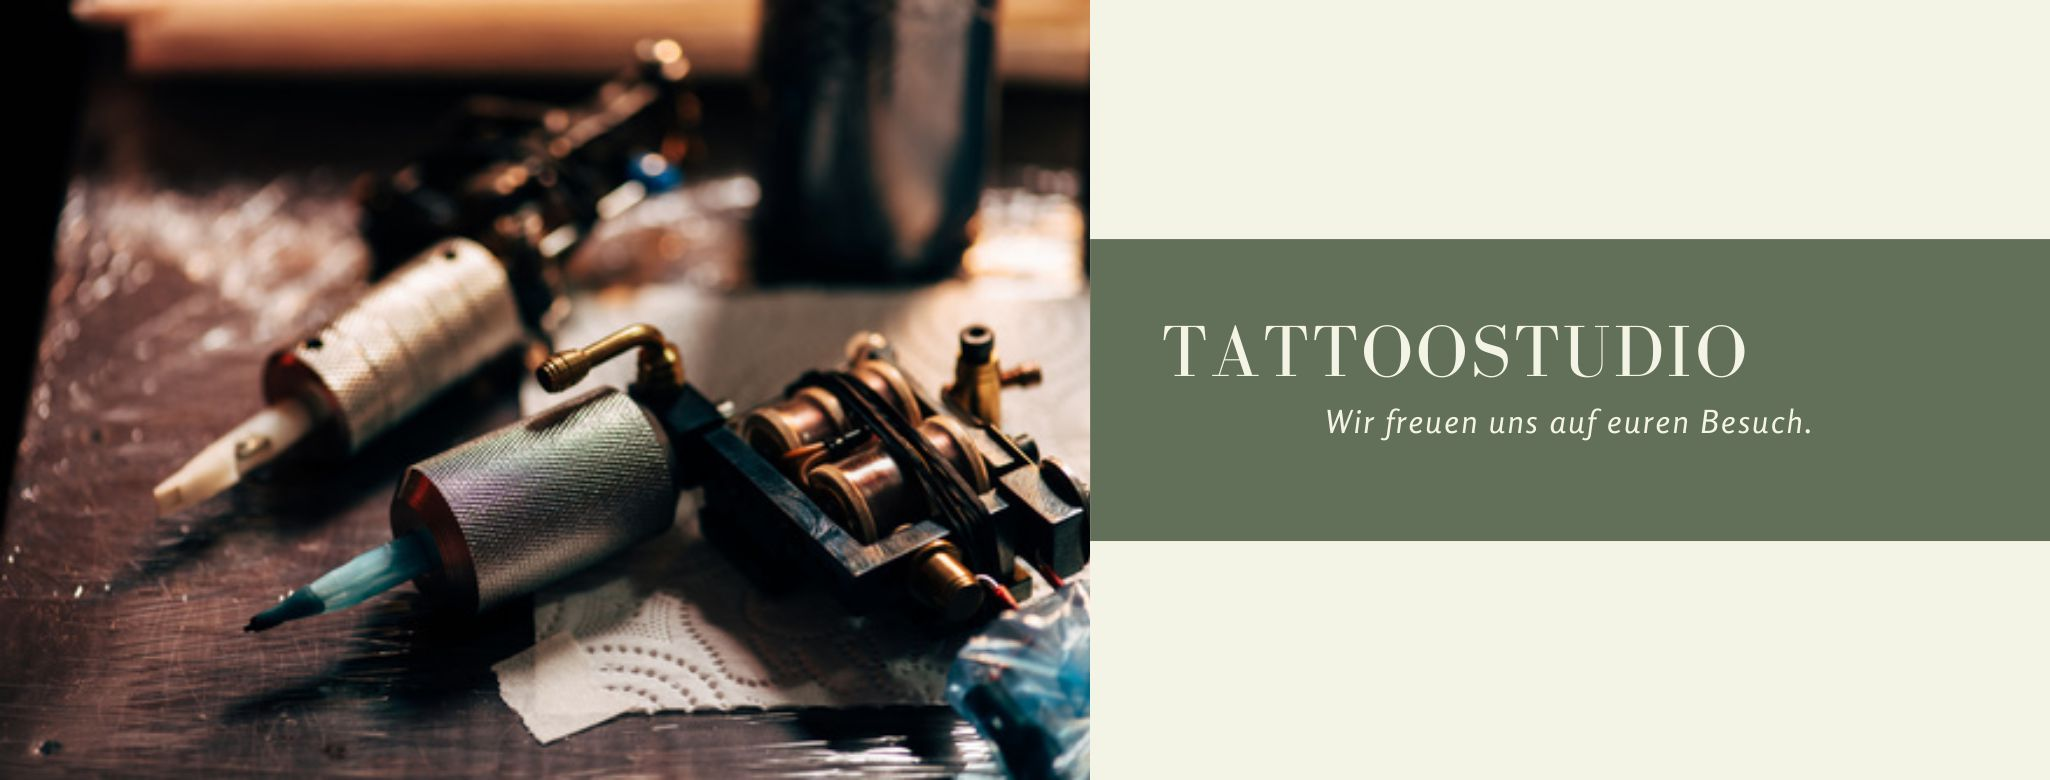 Tattoostudio